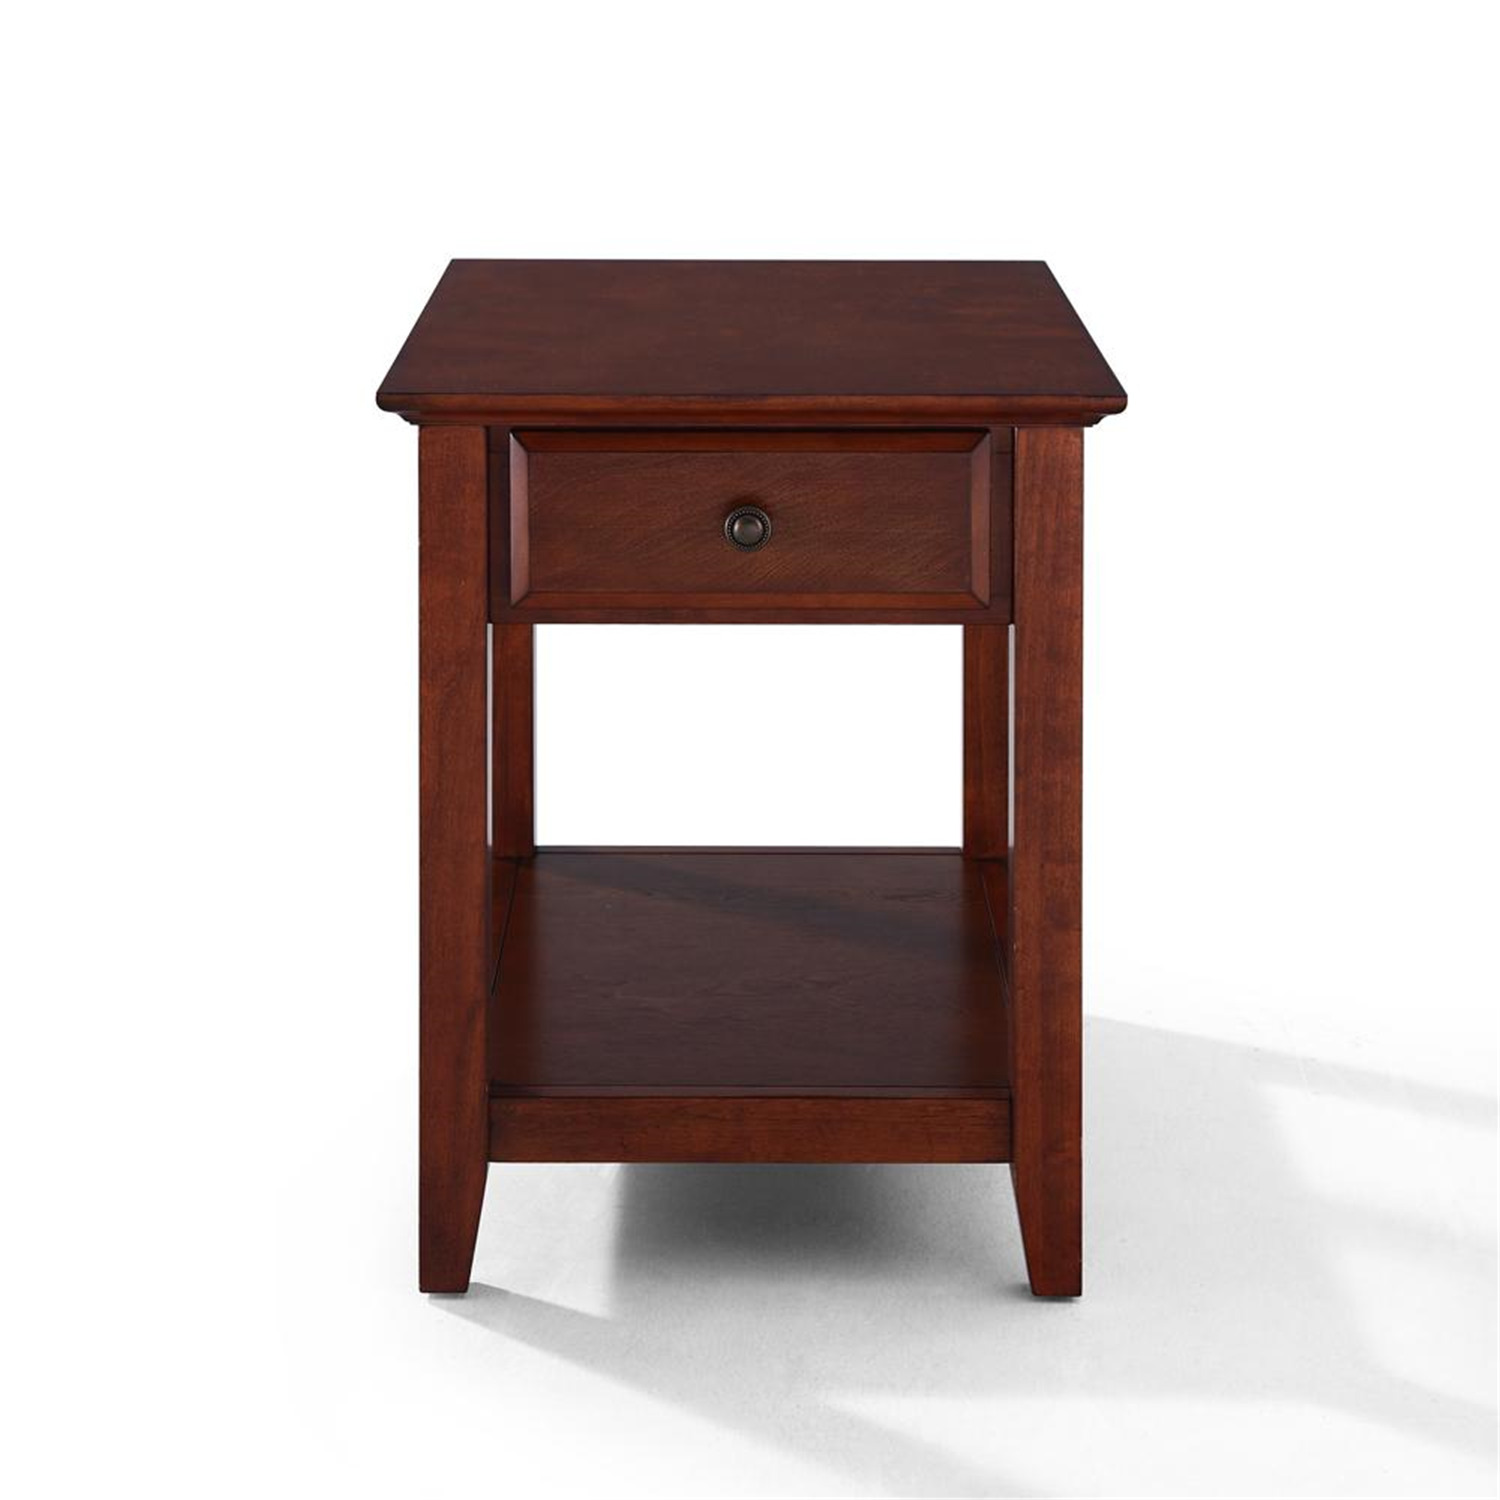 Crosley end table with storage drawer by oj commerce for Large side table with drawers